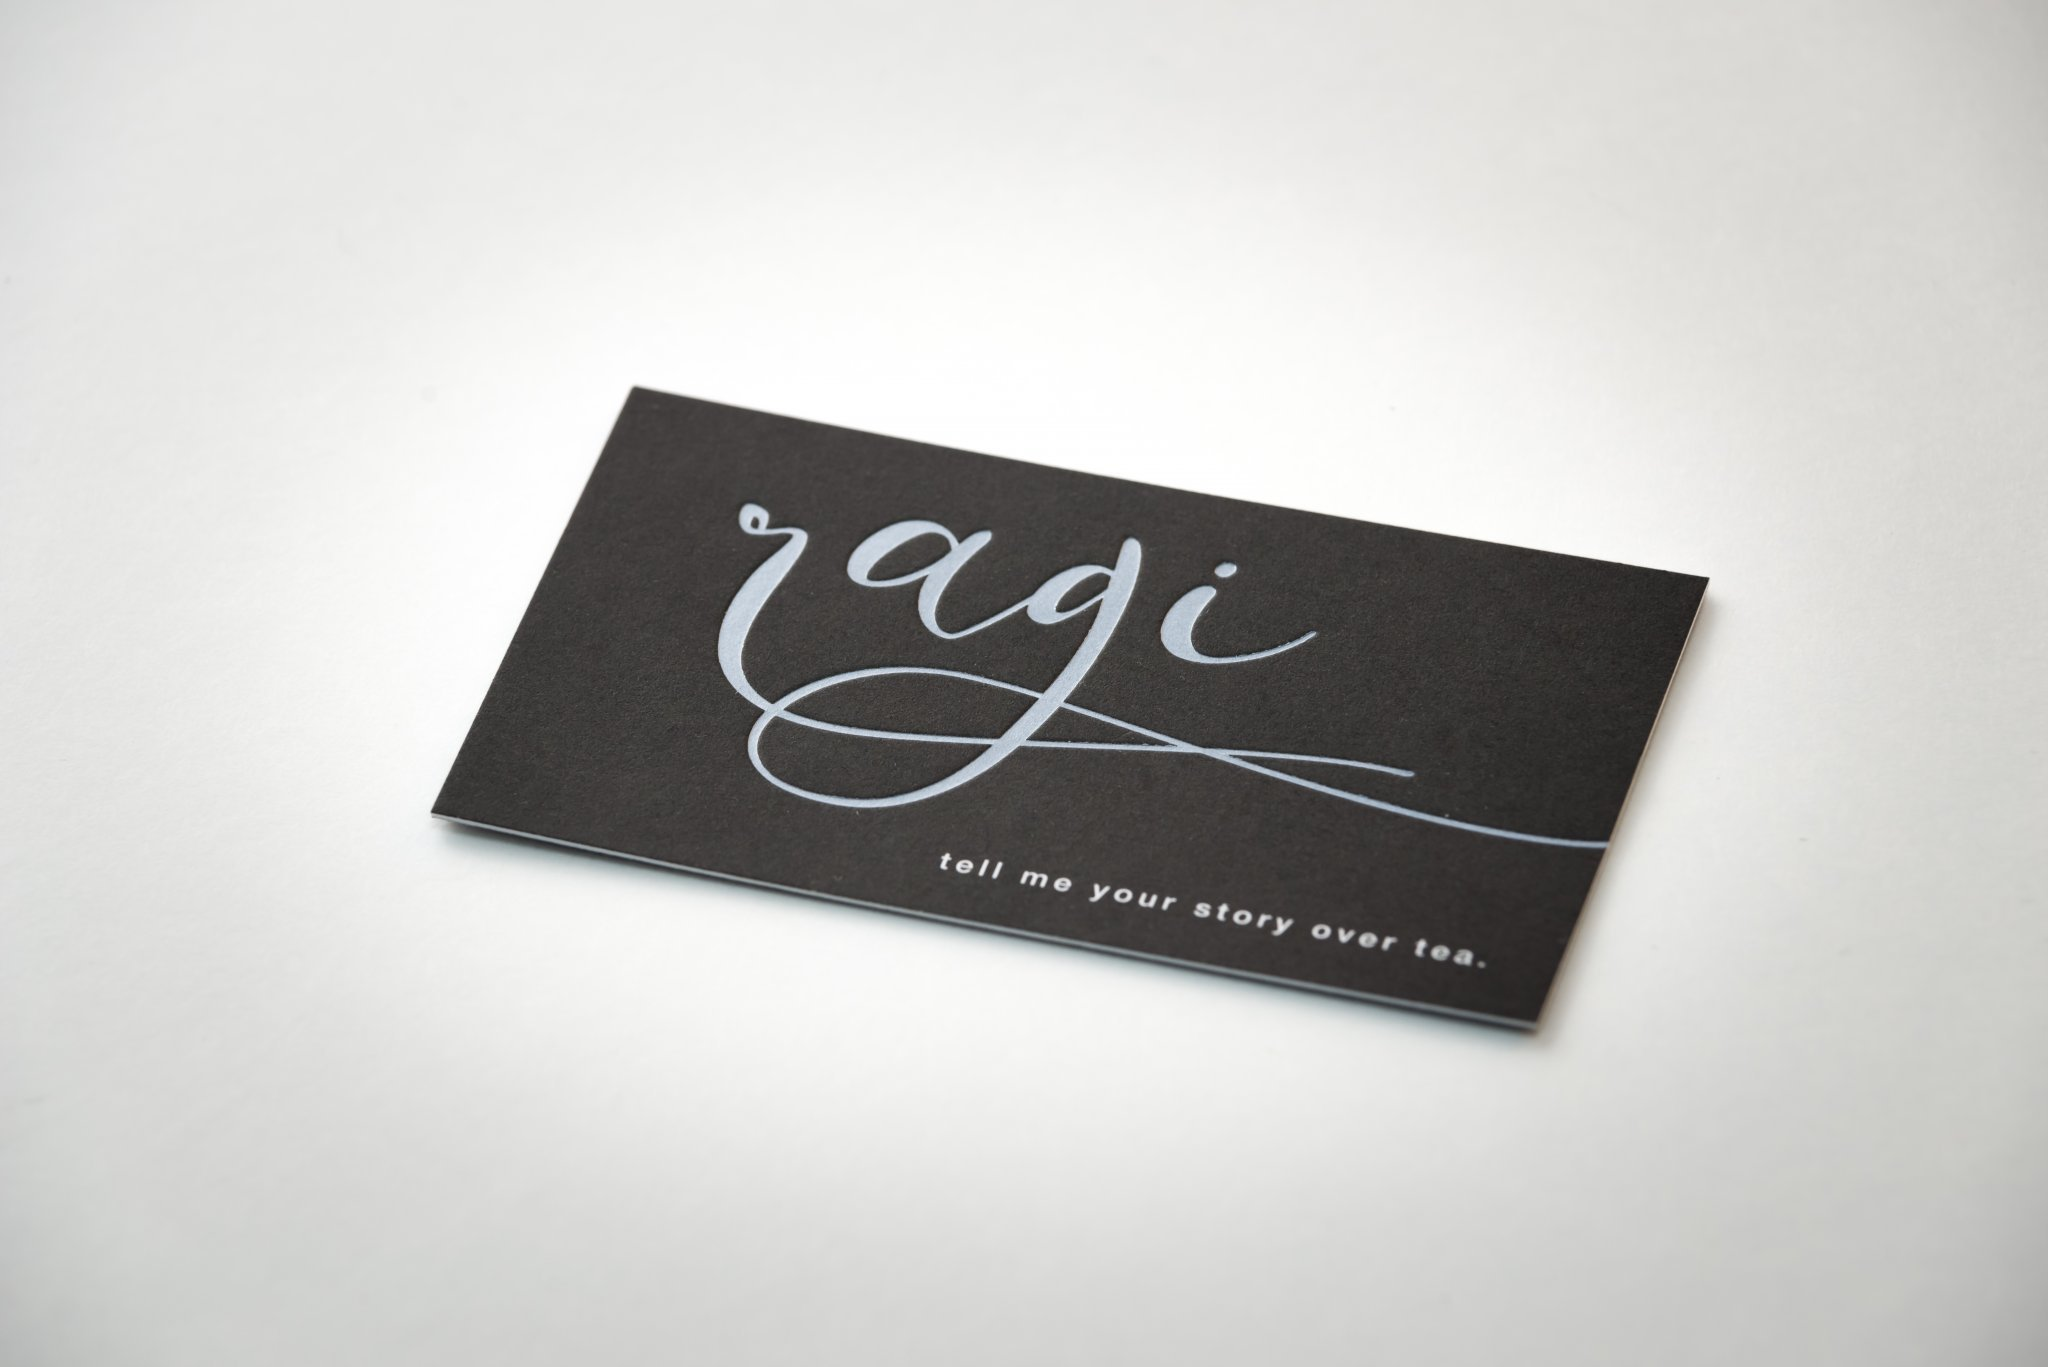 A creative business card created with unique printing techniques